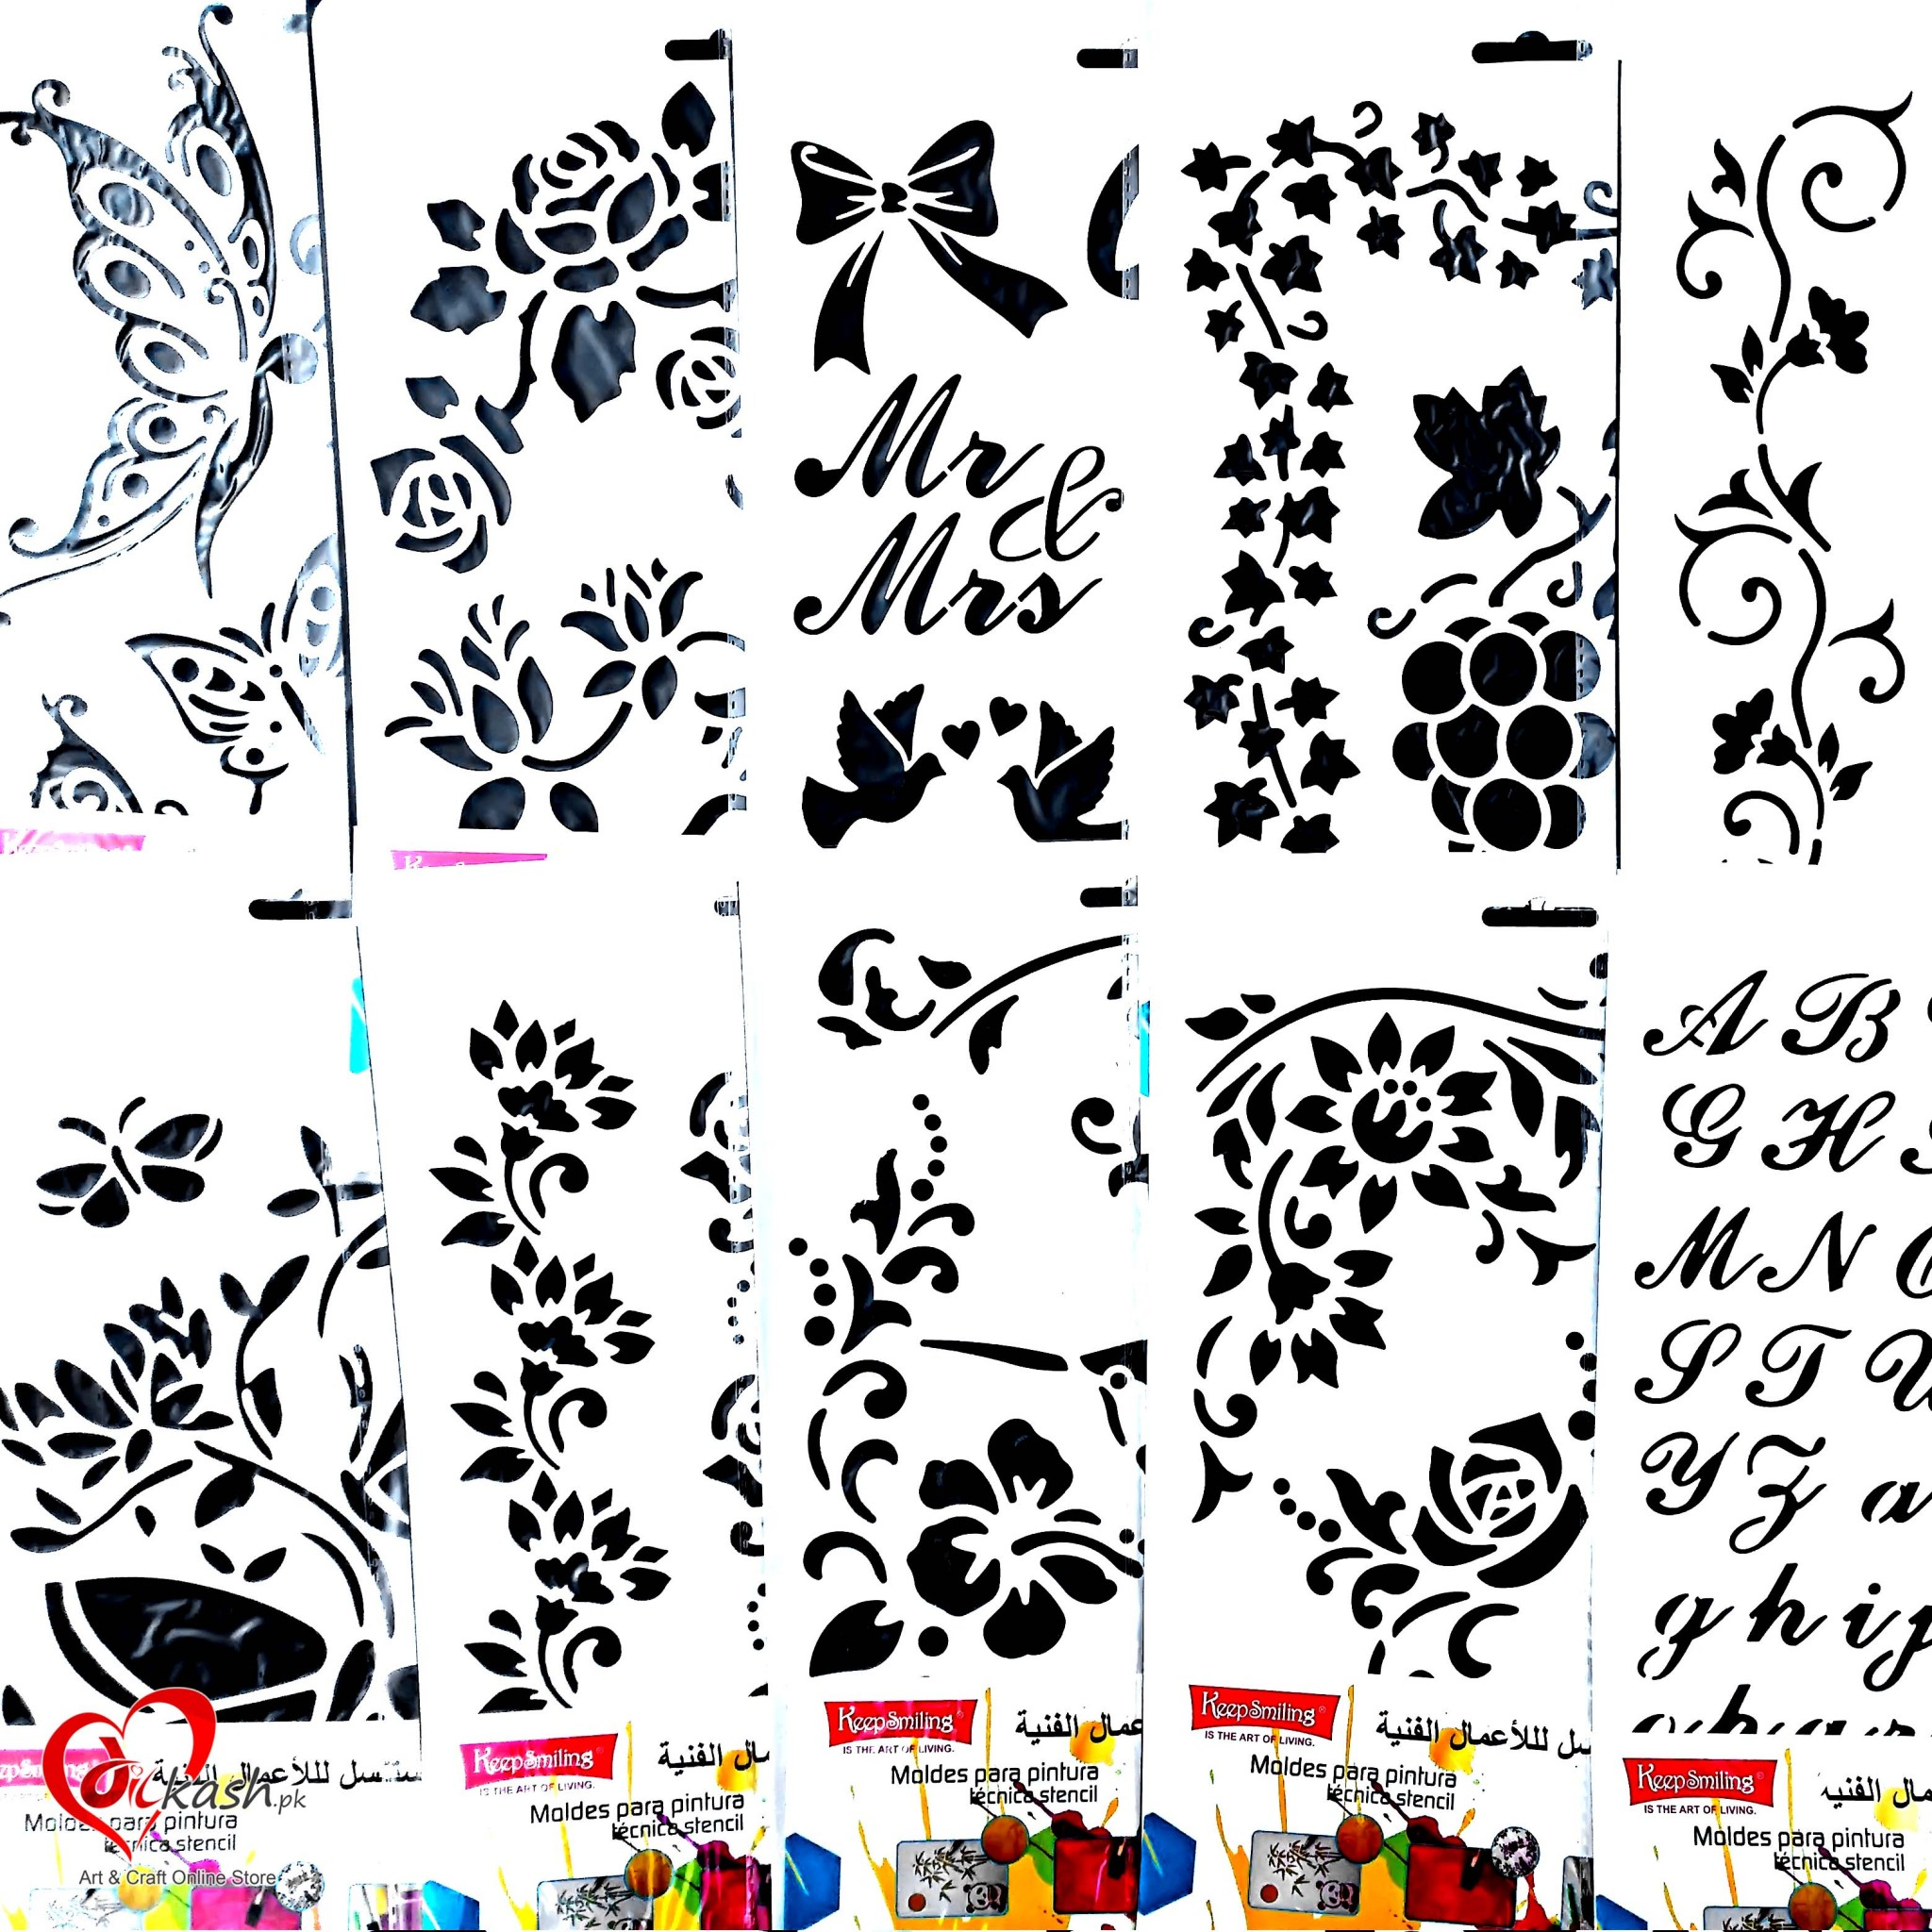 8x12 Inches Wall Stencils for Painting Designs | Art & Craft Online ...